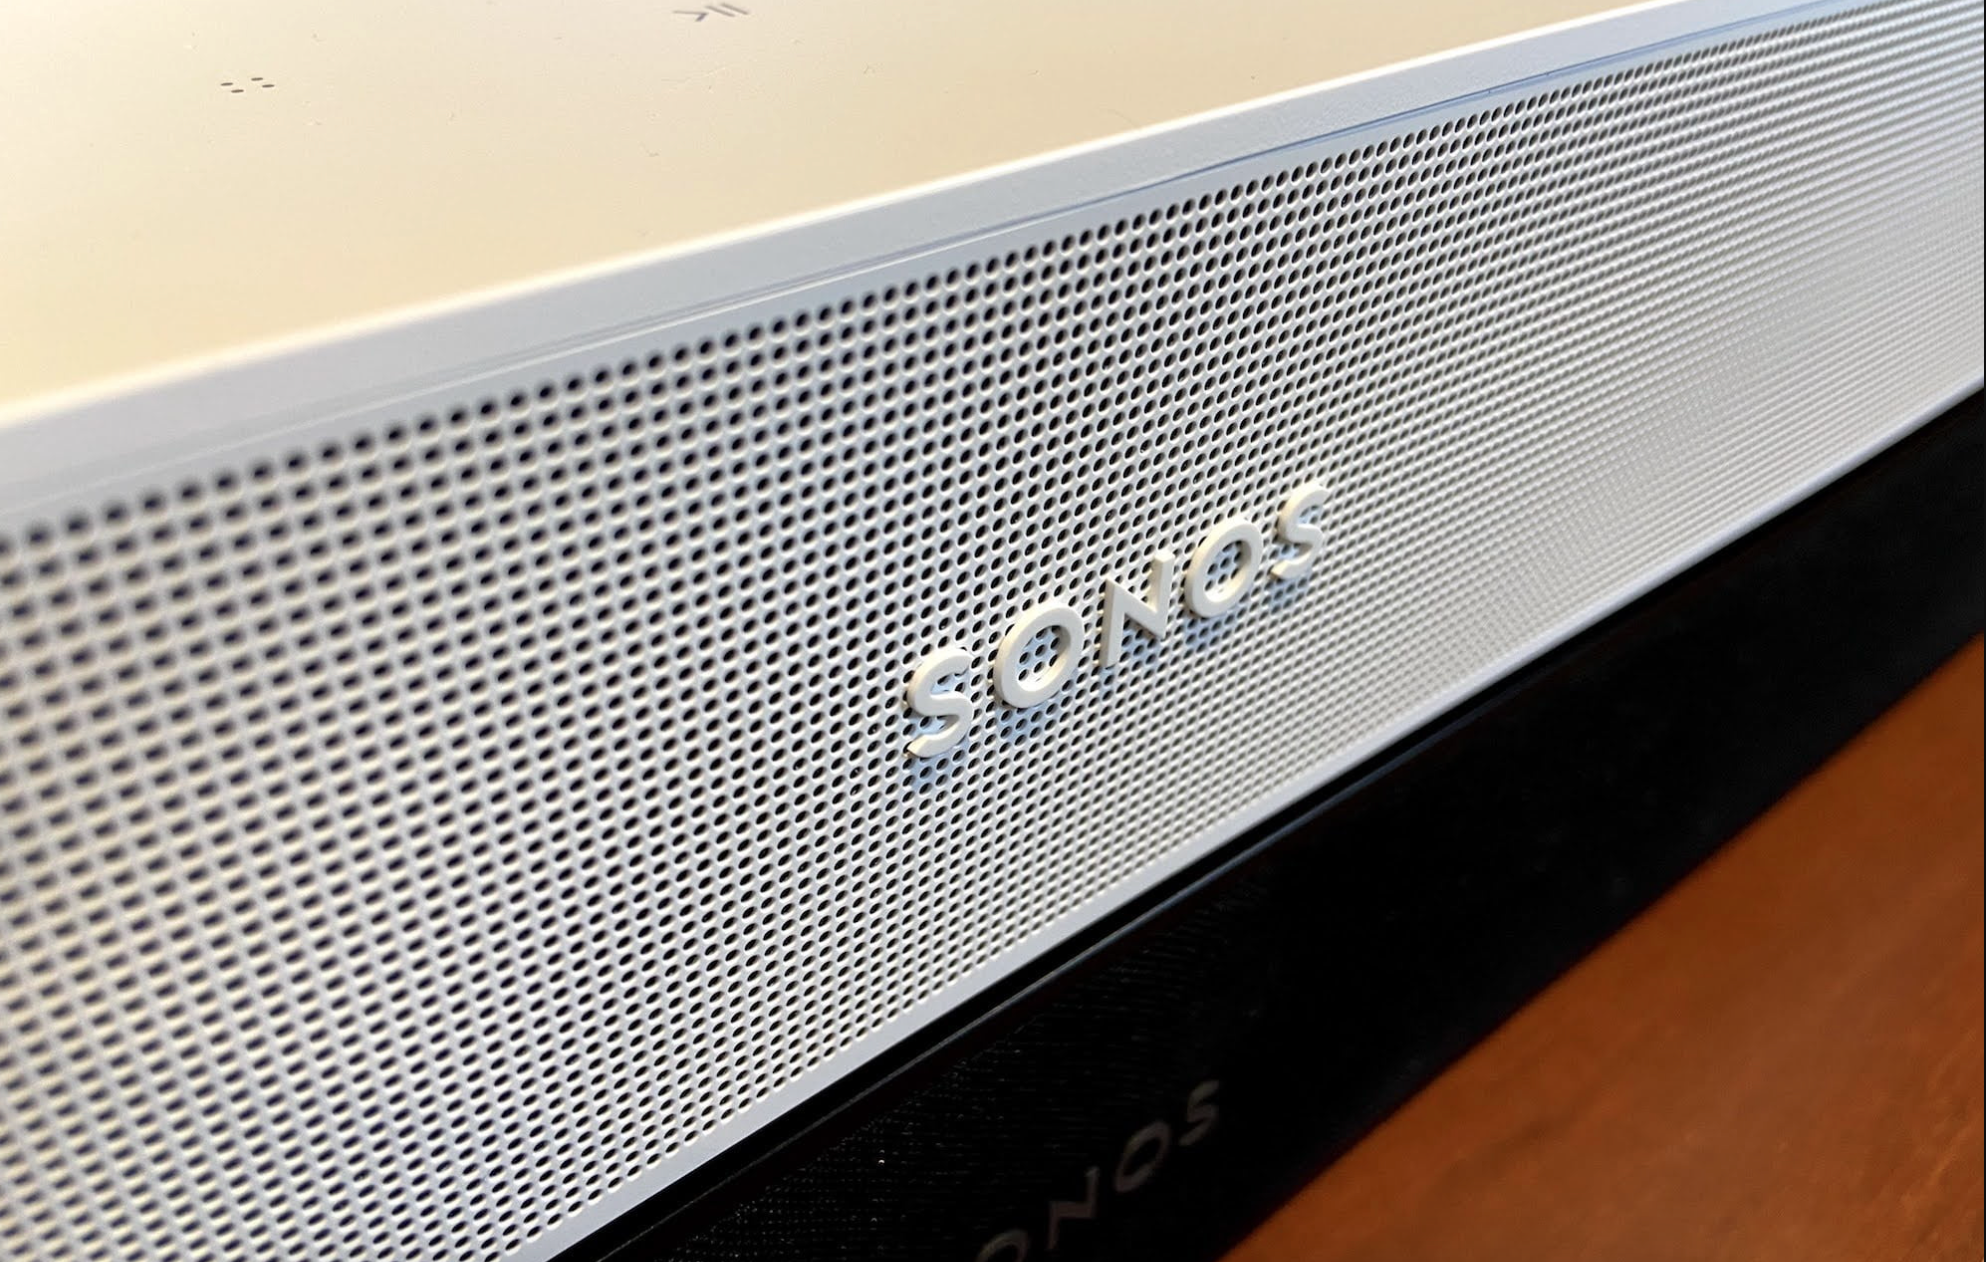 Screen Shot 2021 10 07 at 12.39.33 pm 1 REVIEW: Sonos Beam (Gen 2) Is Small Yet Epic, Stylish Yet Invisible